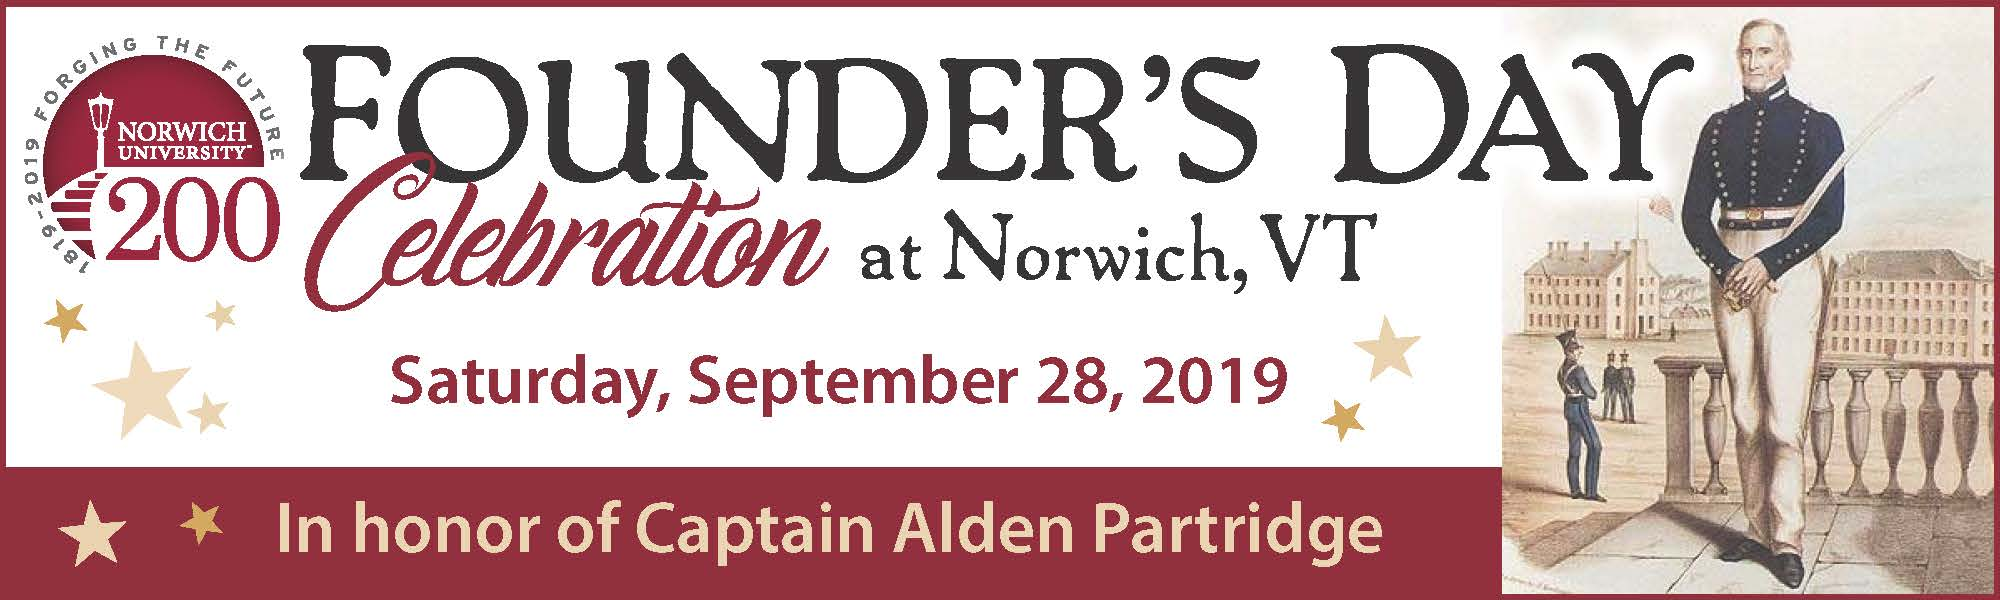 founder's day norwich